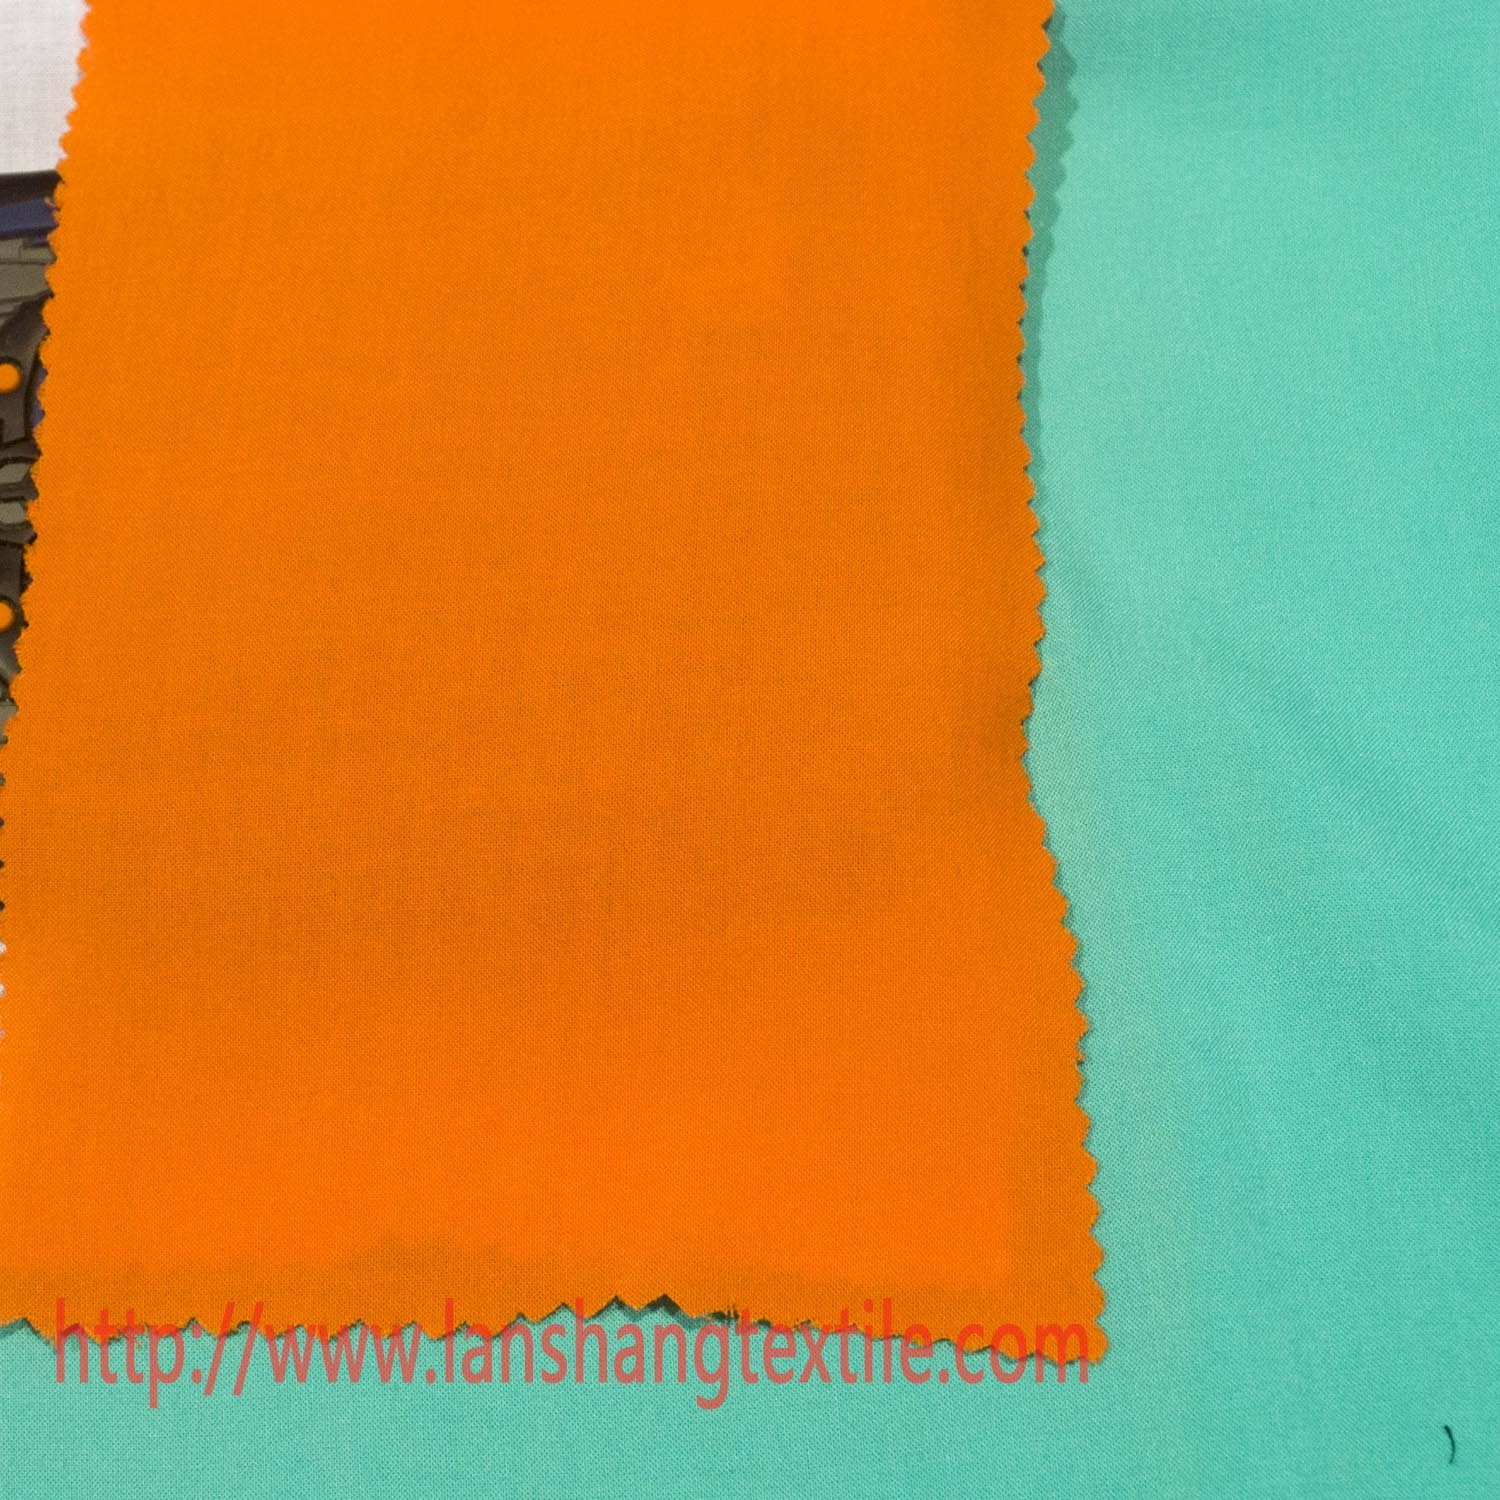 Rayon Fabric Plain Fabric Chemical Fabric Dyed Fabric for Garment